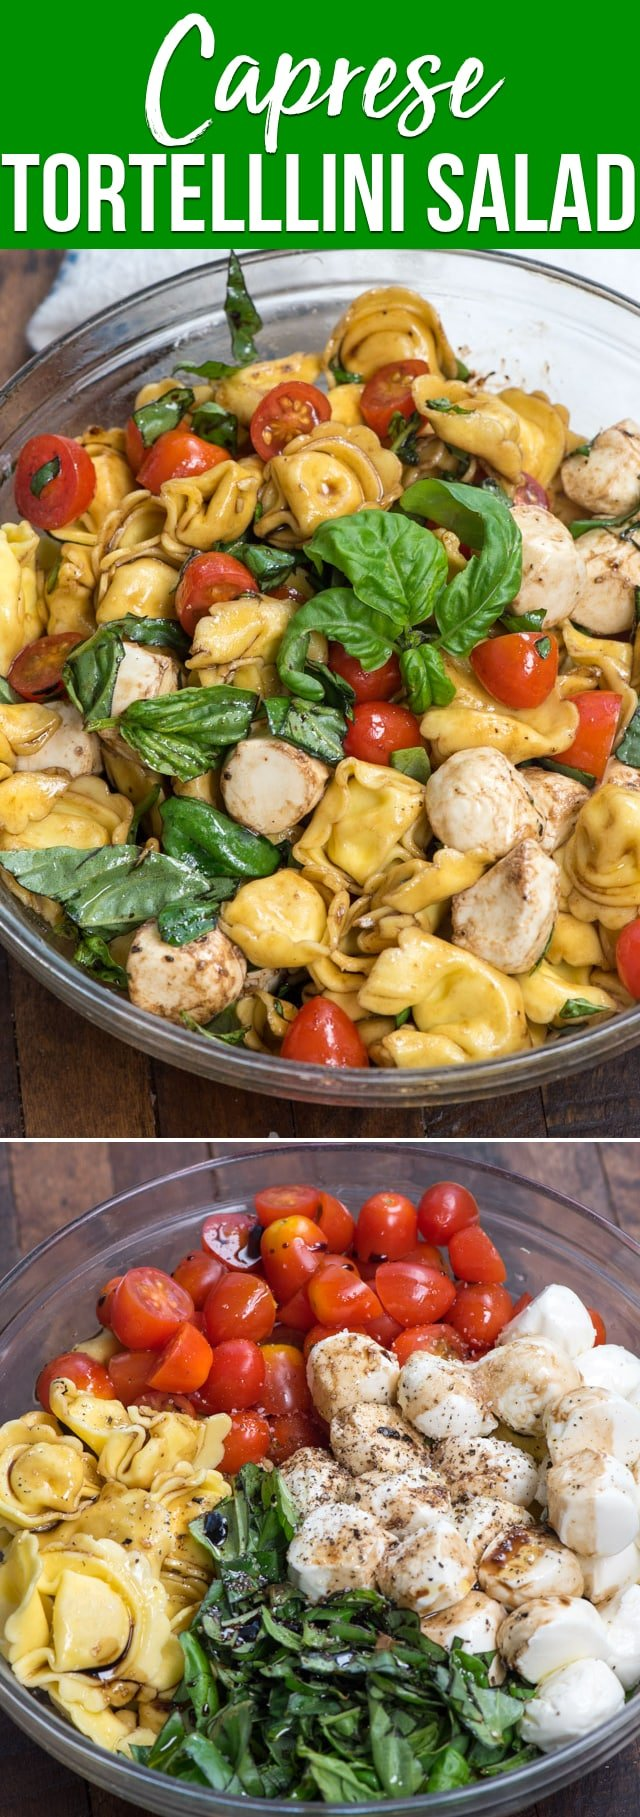 A Tortellini Caprese Pasta Salad has tortellini, basil, tomatoes and mozzarella with a balsamic dressing. It's an easy and delicious pasta salad recipe perfect for summer!